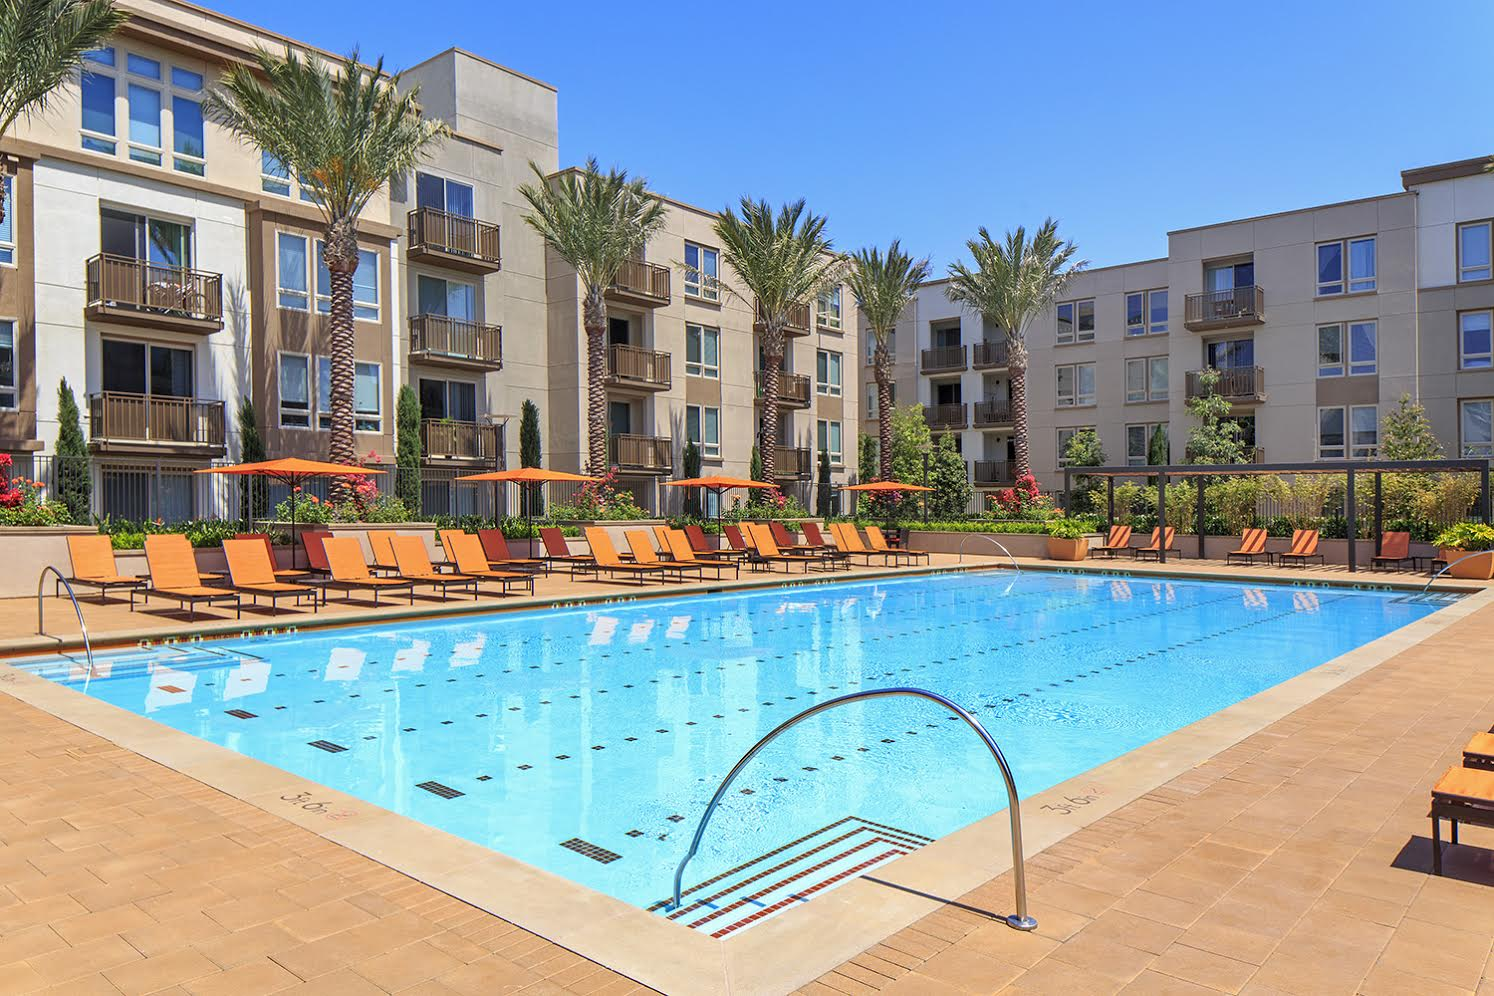 Pre Leasing Activity Underway For Second Phase Of River View Apartment  Homes In North San Jose; Apartment Community Is Centrally Located Near  Light Rail ...